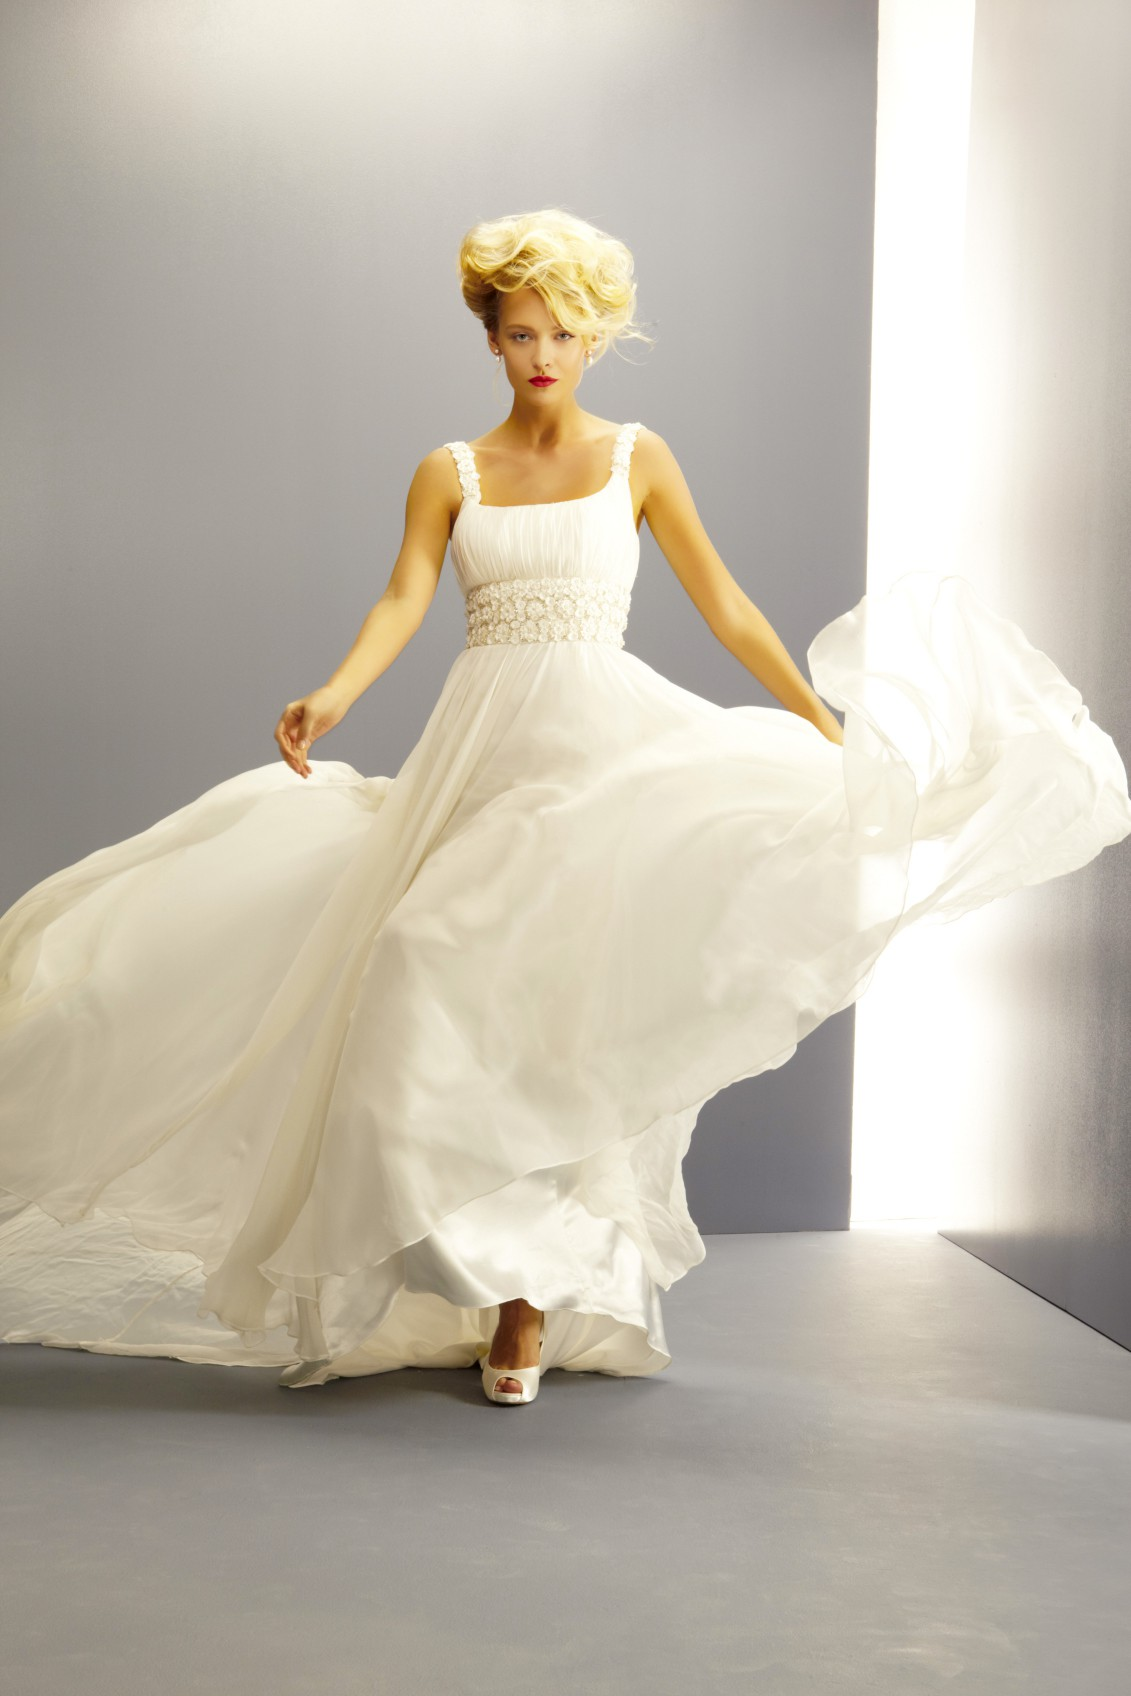 Ritva westenius delightful wedding dress on sale 80 off for Do dry cleaners steam wedding dresses